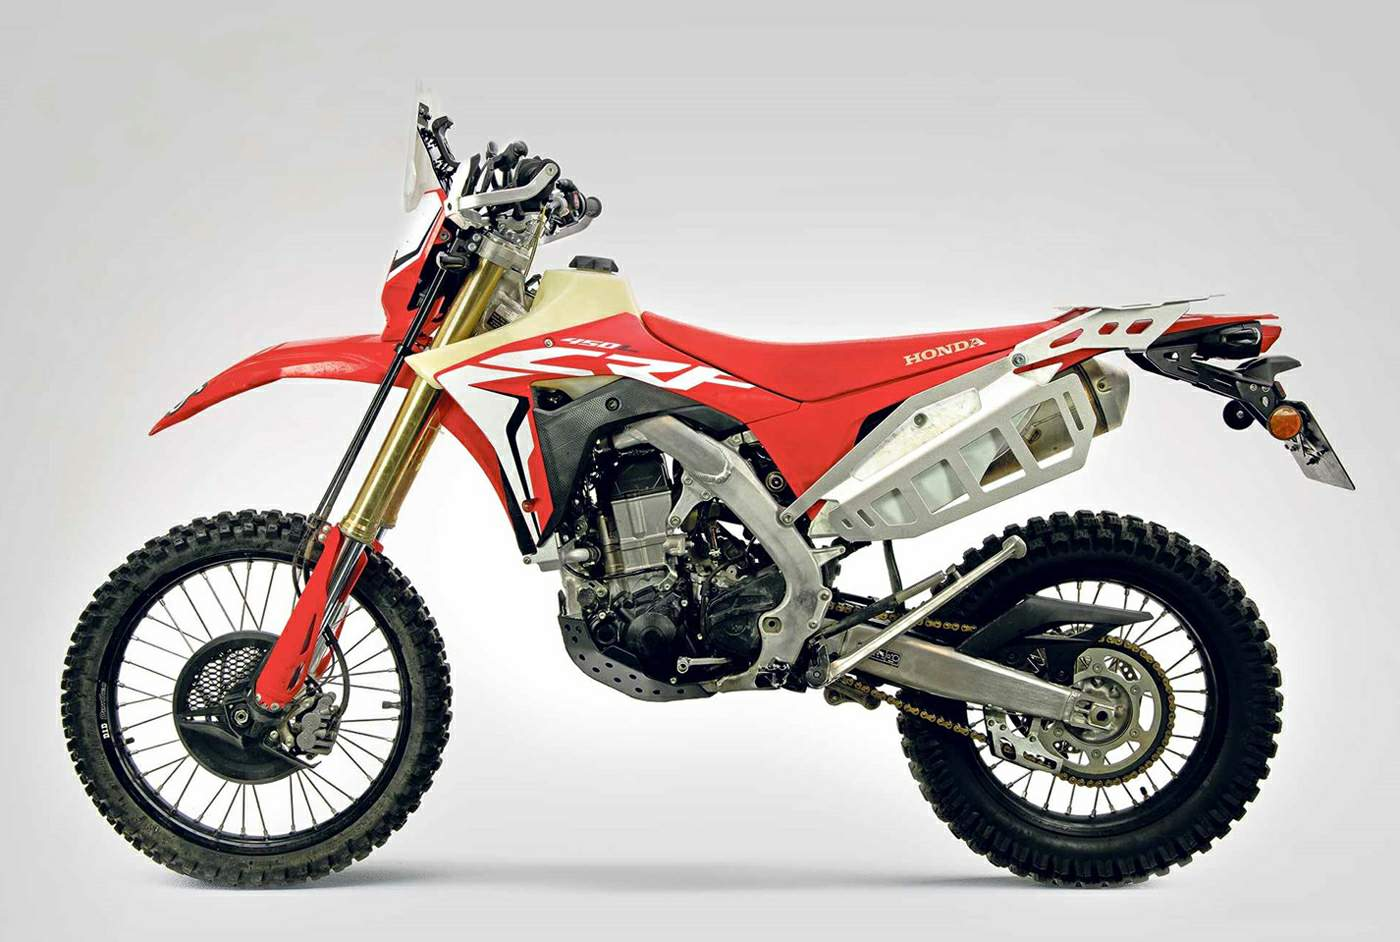 Honda CRF450L by Adventure Spec For Sale Specifications, Price and Images